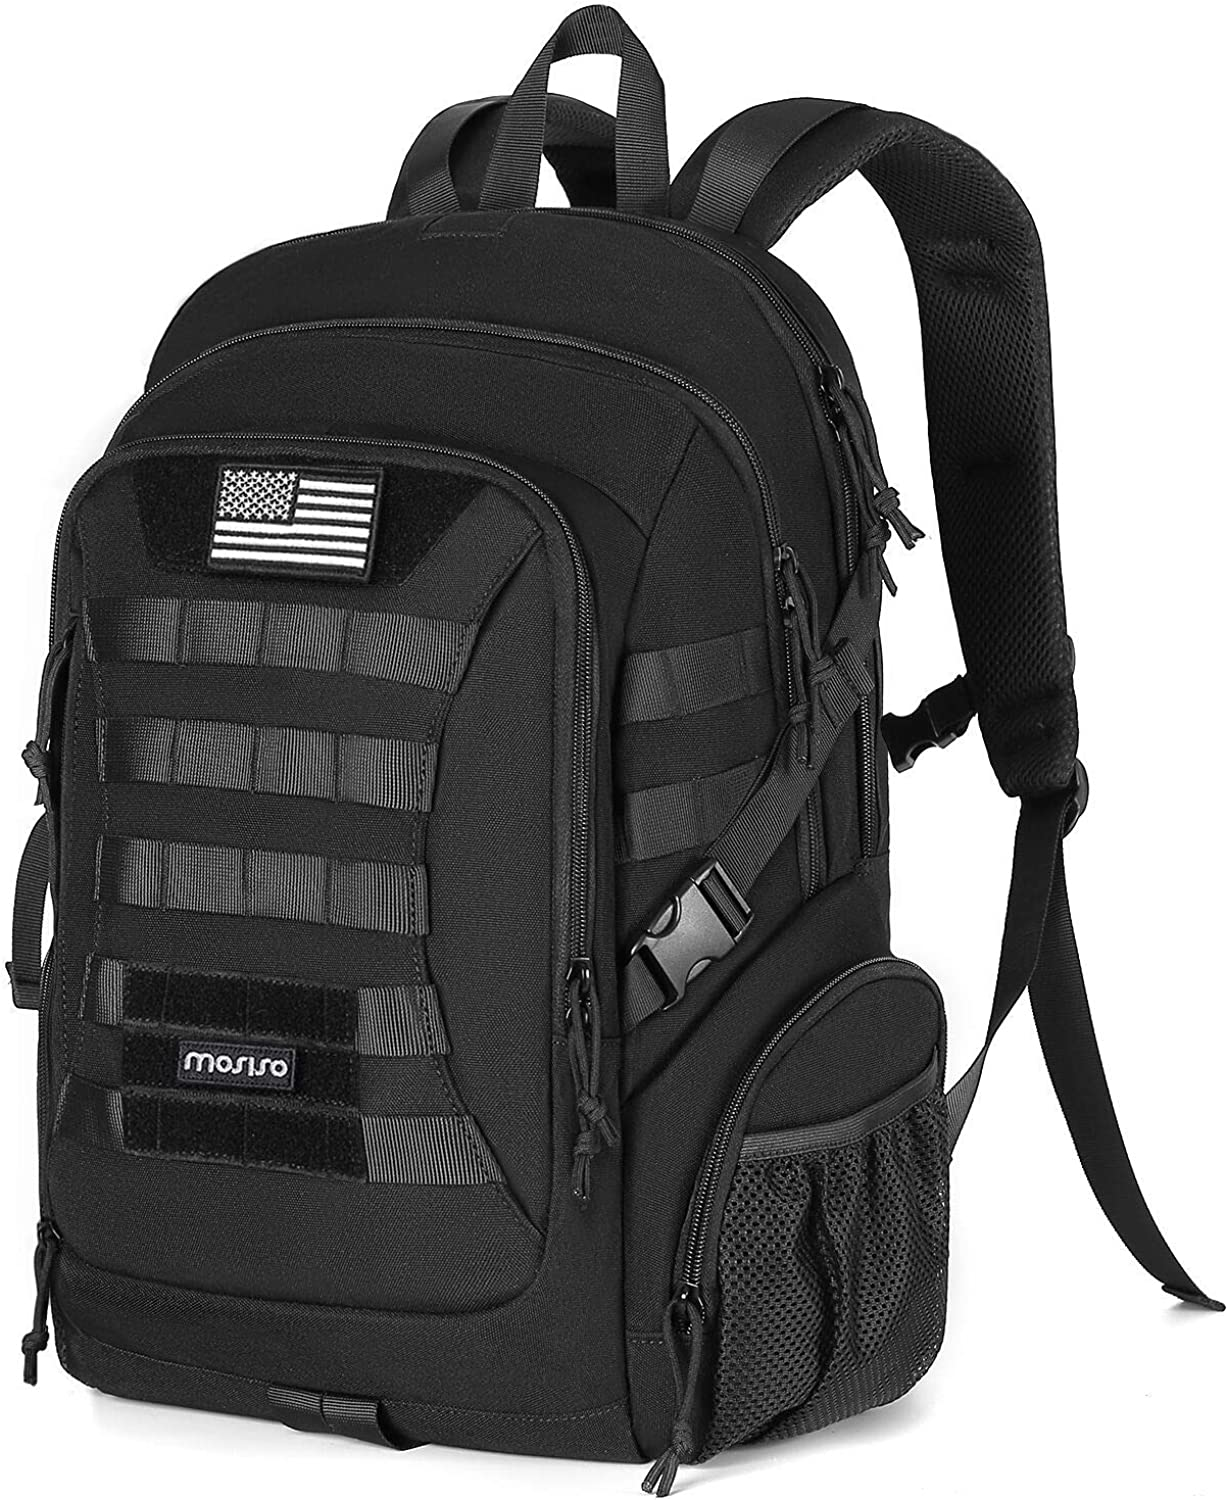 MOSISO Tactical Backpack, 2-Layer Multifuntional Large Molle Rucksack Daypack Adjustable Shoulder Back Pack Bag with Side Bottle Holder/USA Flag for Sport Outdoor Hiking Camping Training, Black